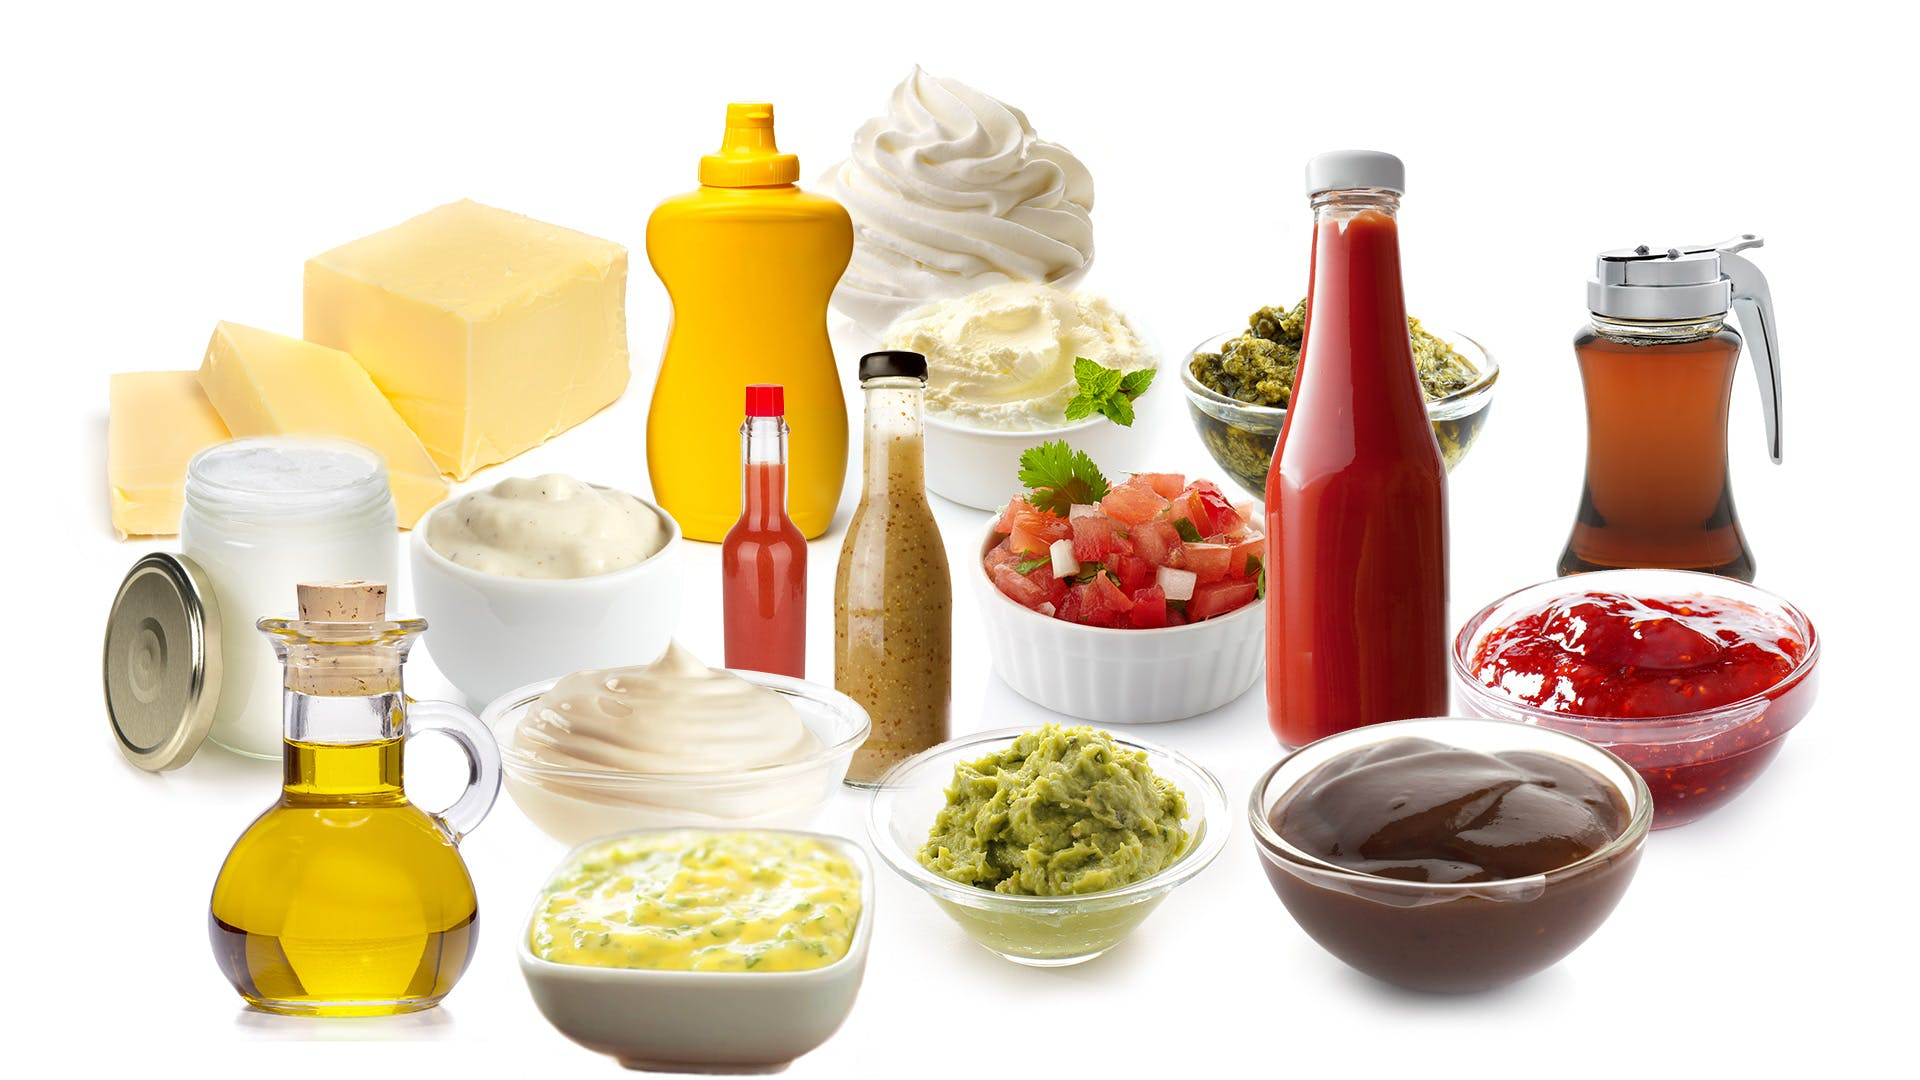 Keto fats & sauces